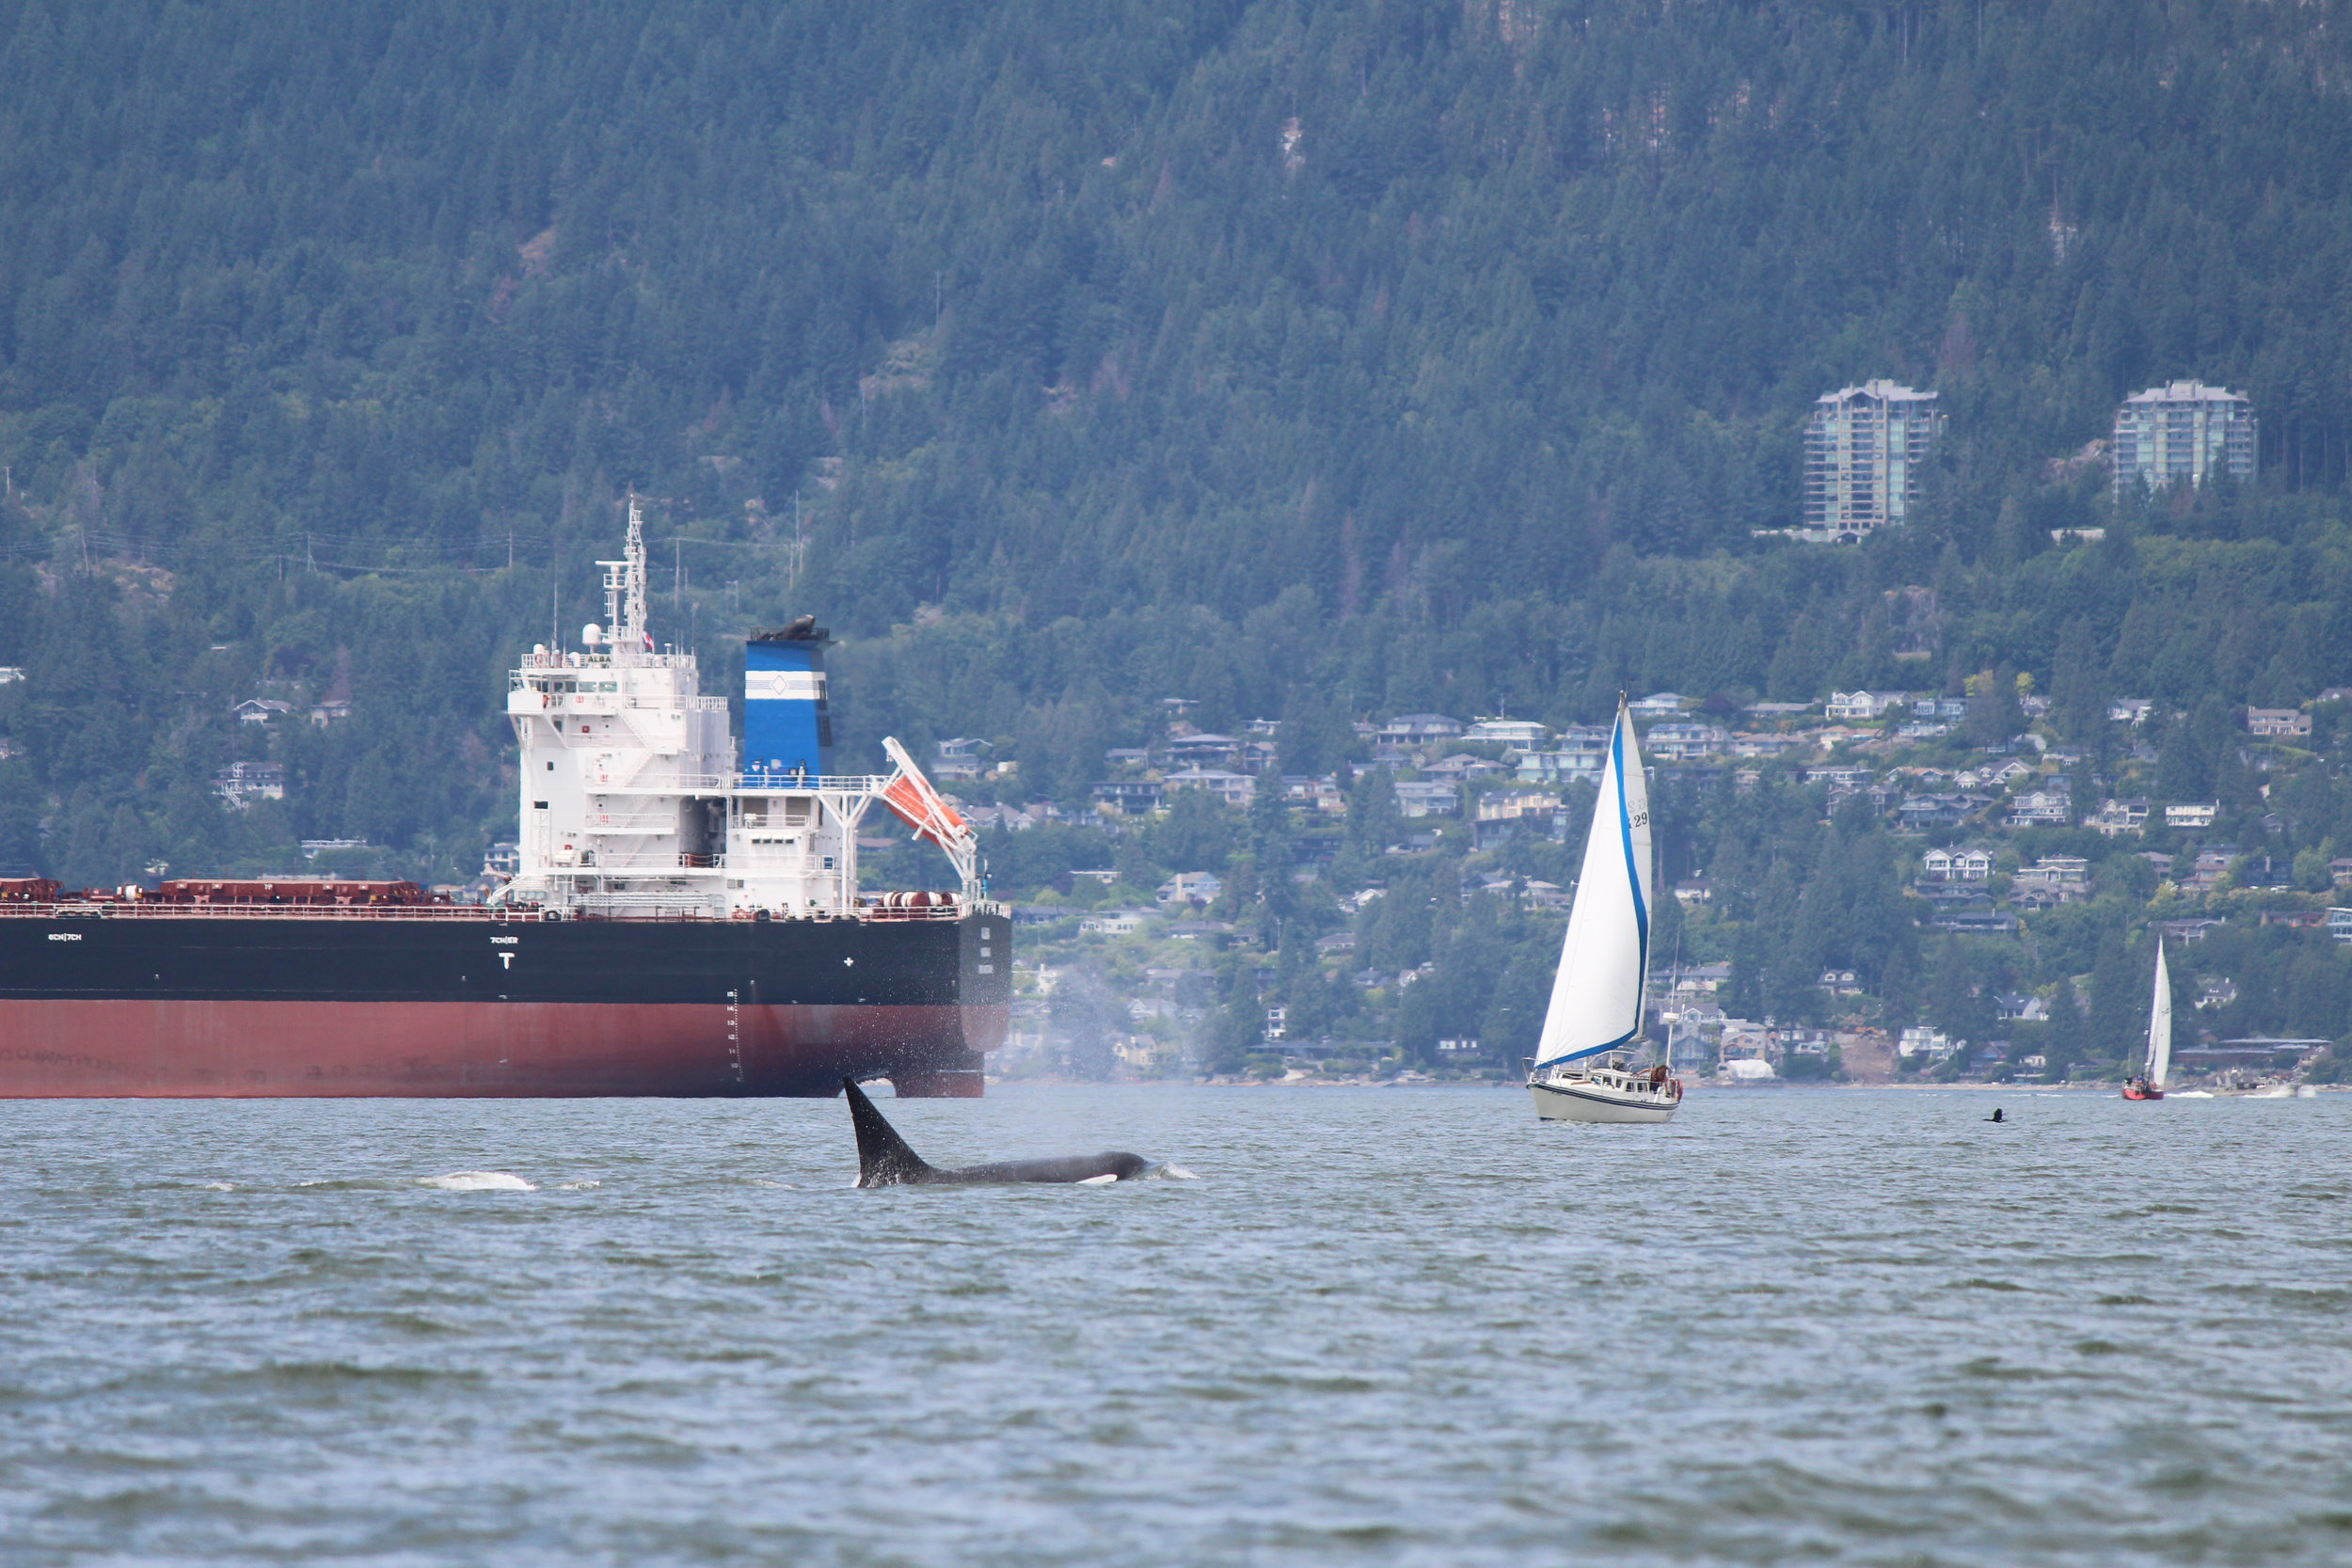 Even with Vancouver's busy waters, the whales are still searching for prey. Photo by Natalie Reichenbacher.